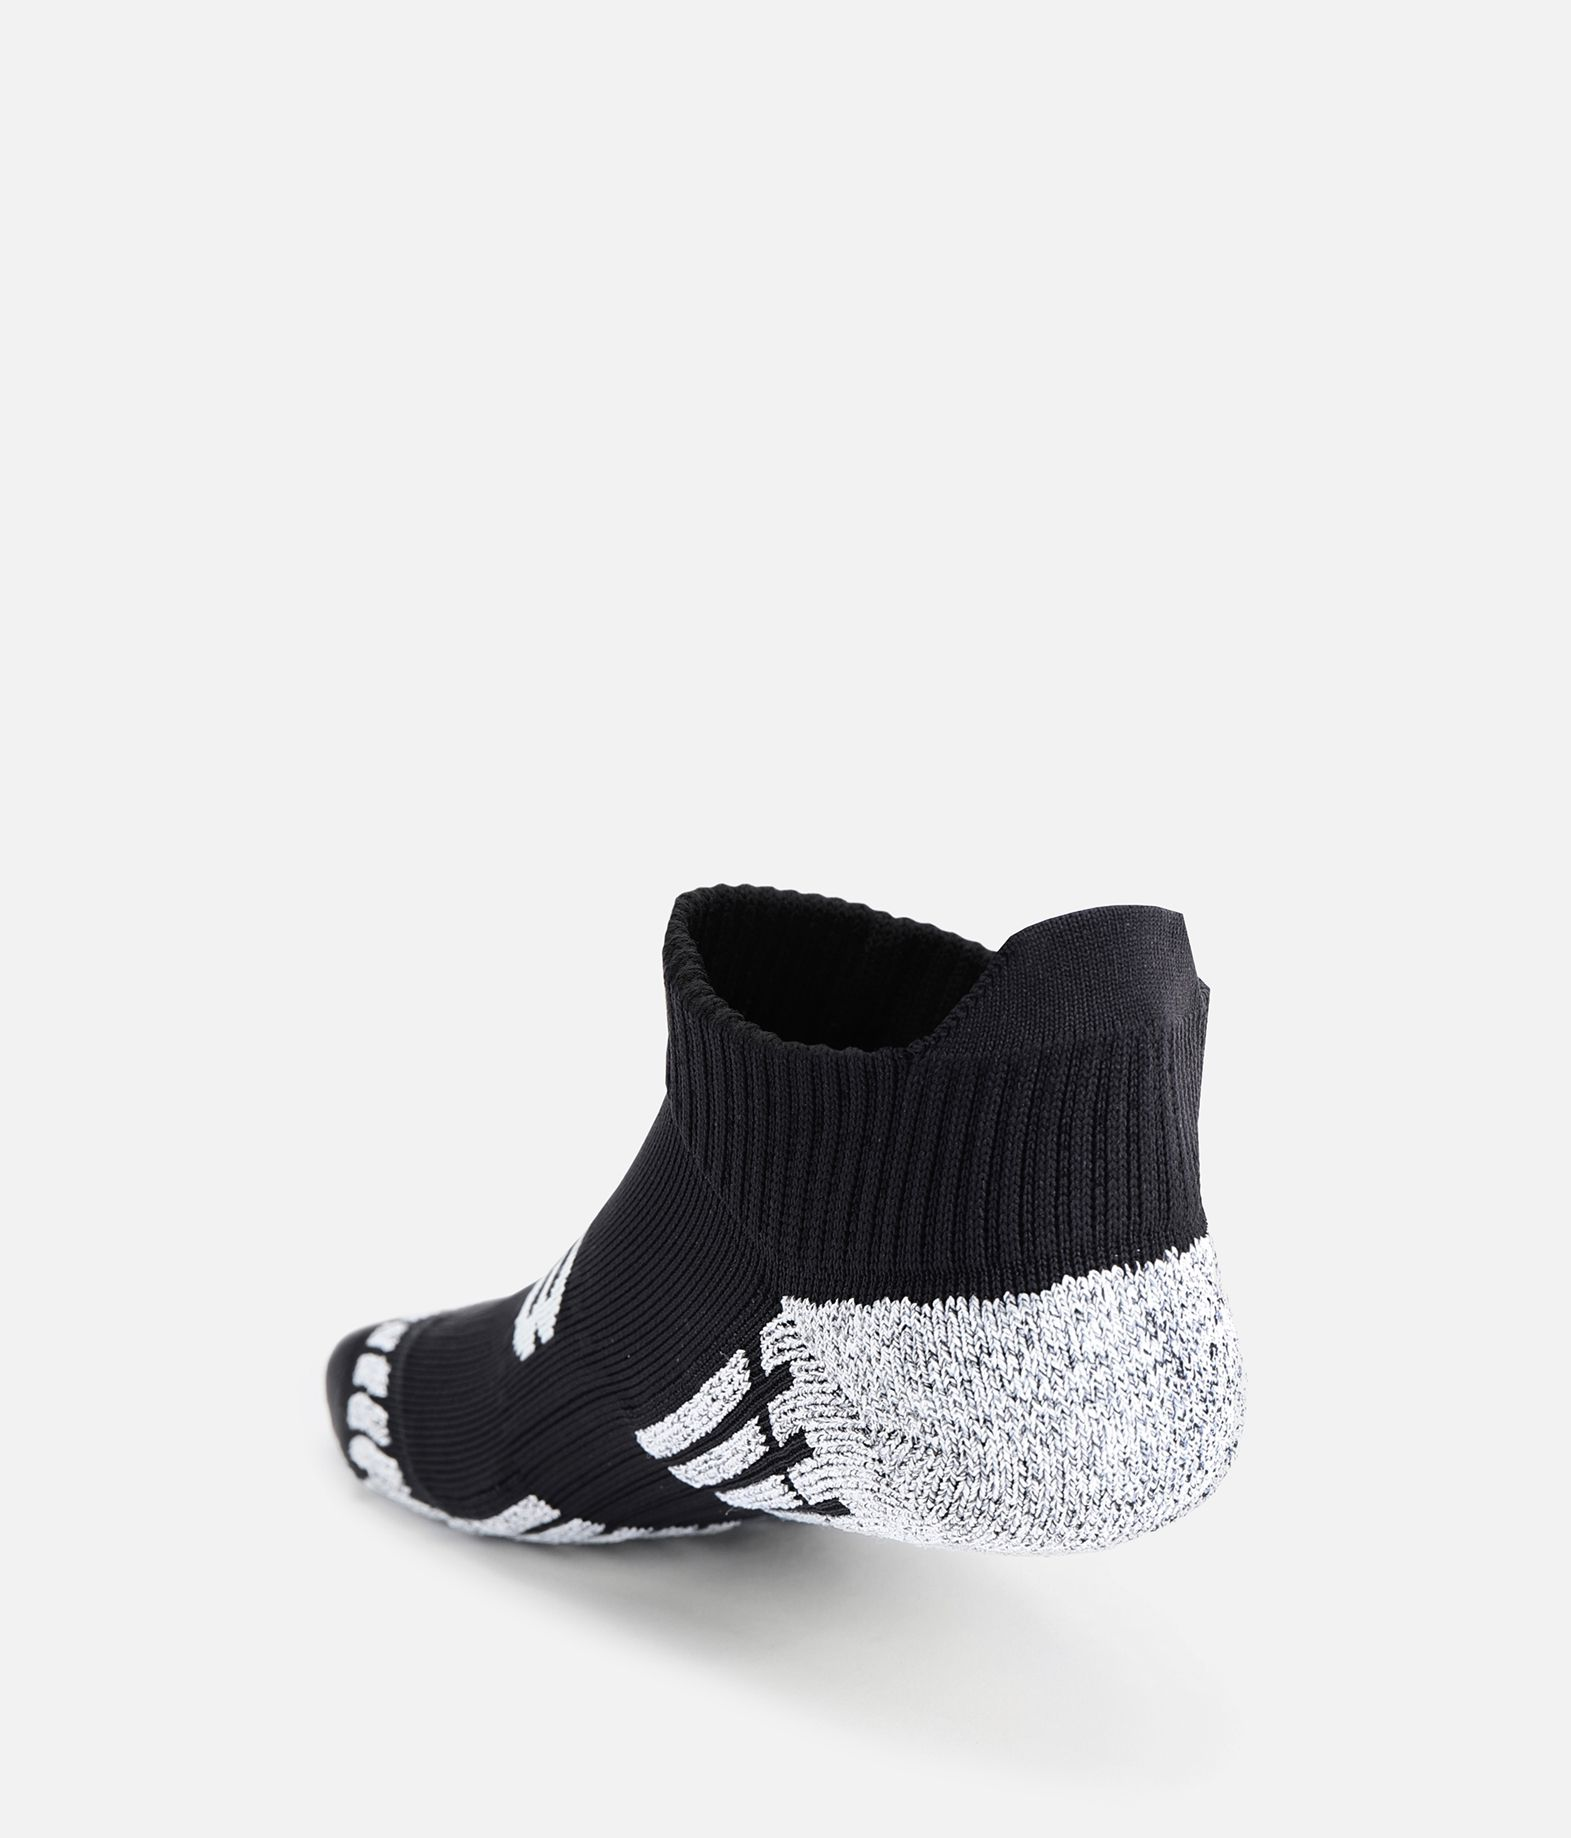 Y-3 Y-3 Invisible Socks Socken E d